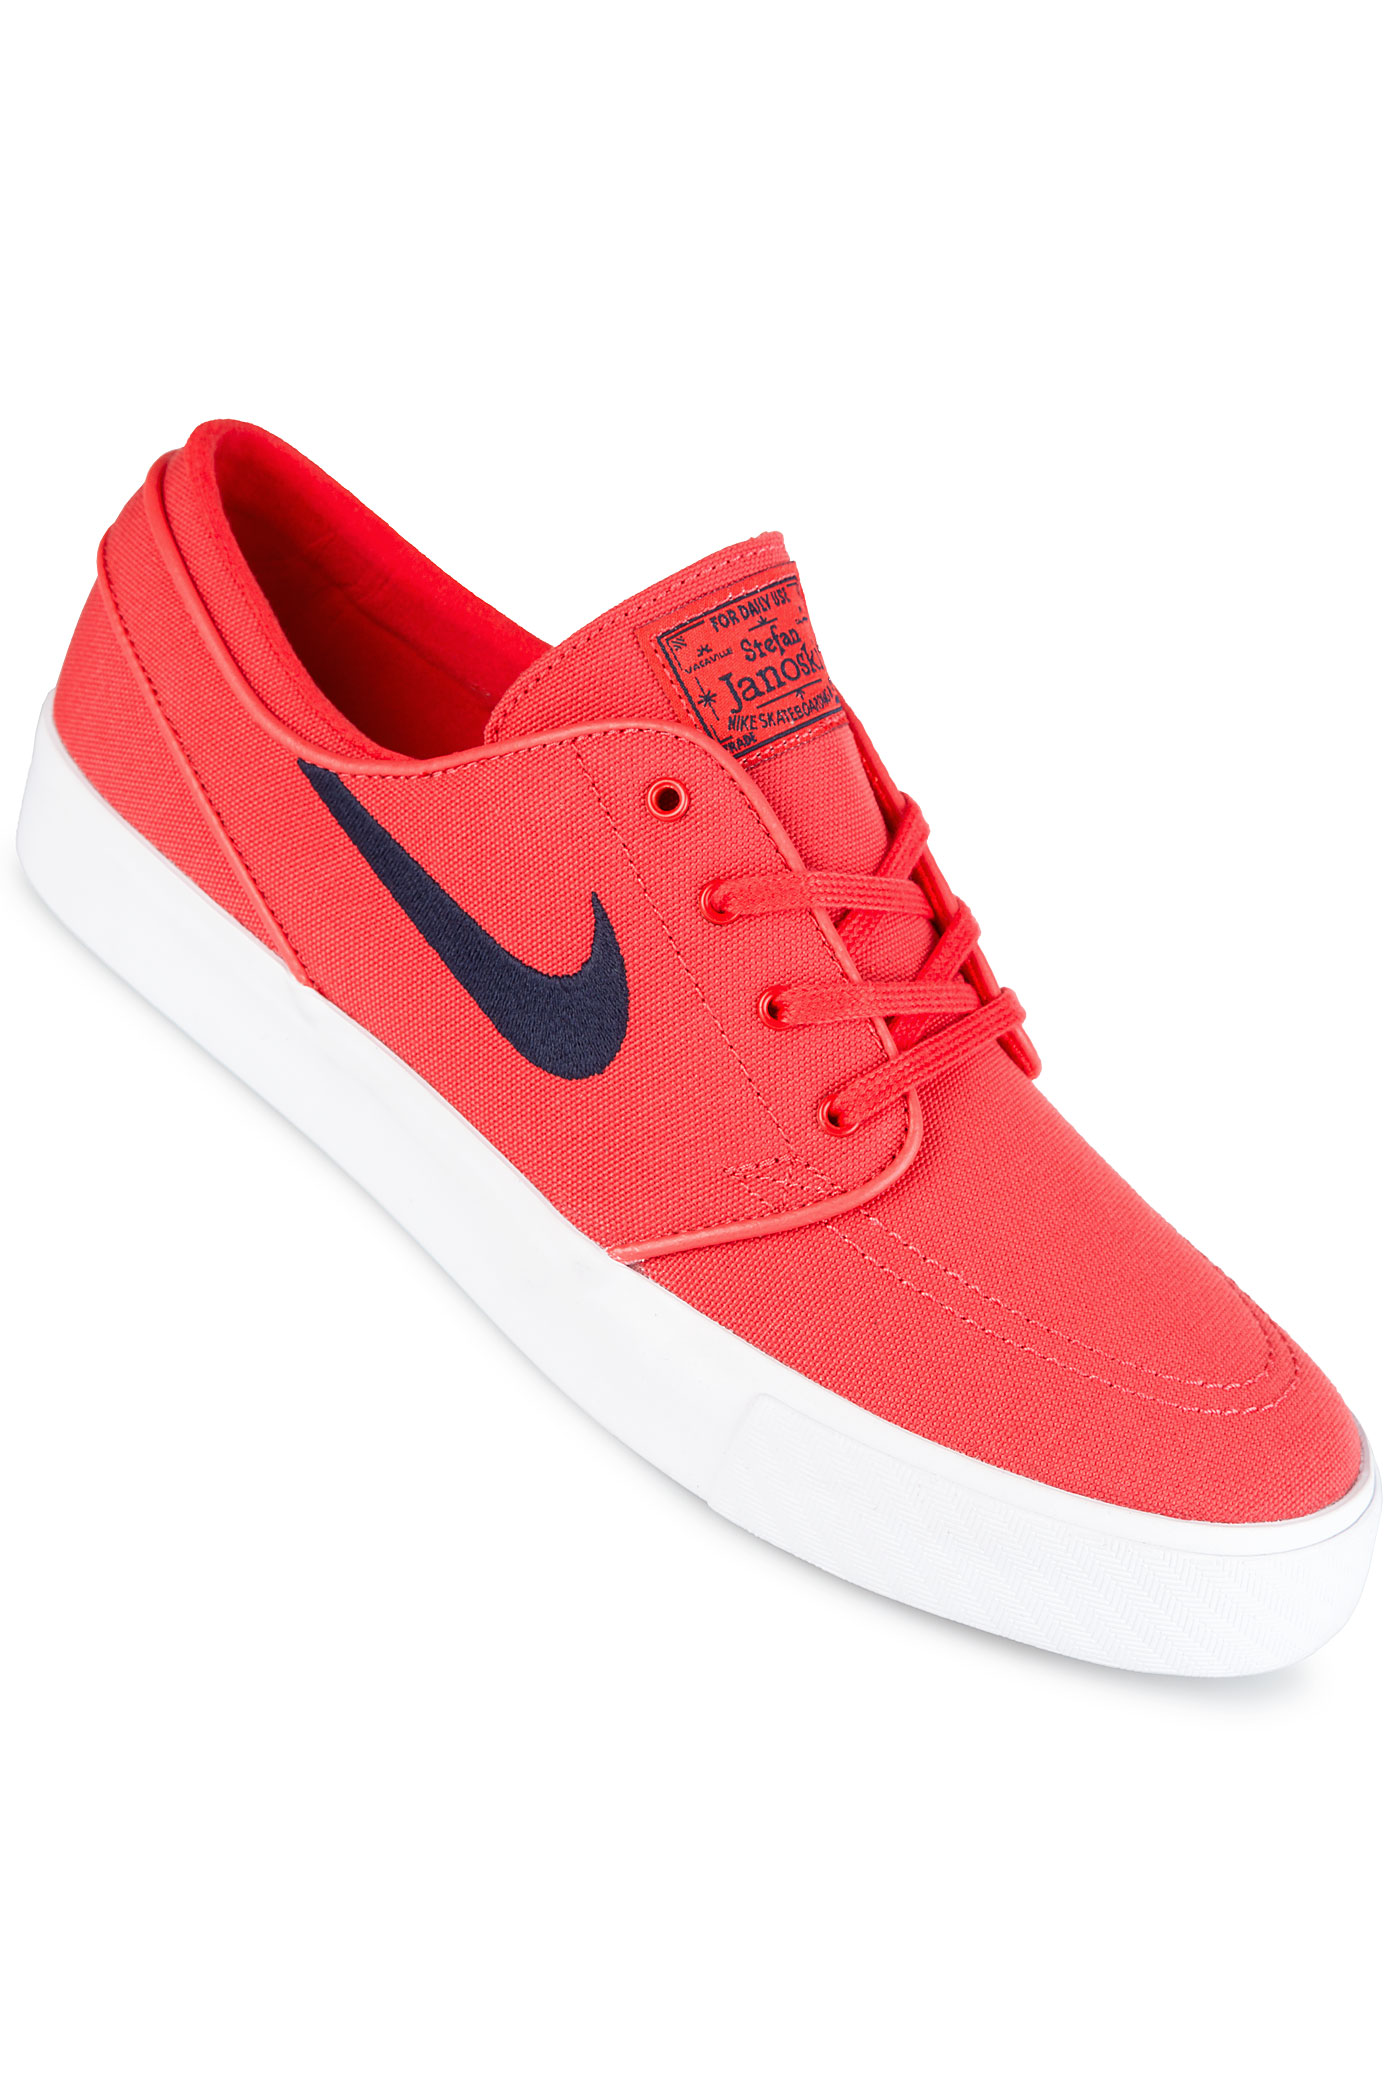 nike sb zoom stefan janoski canvas shoes track